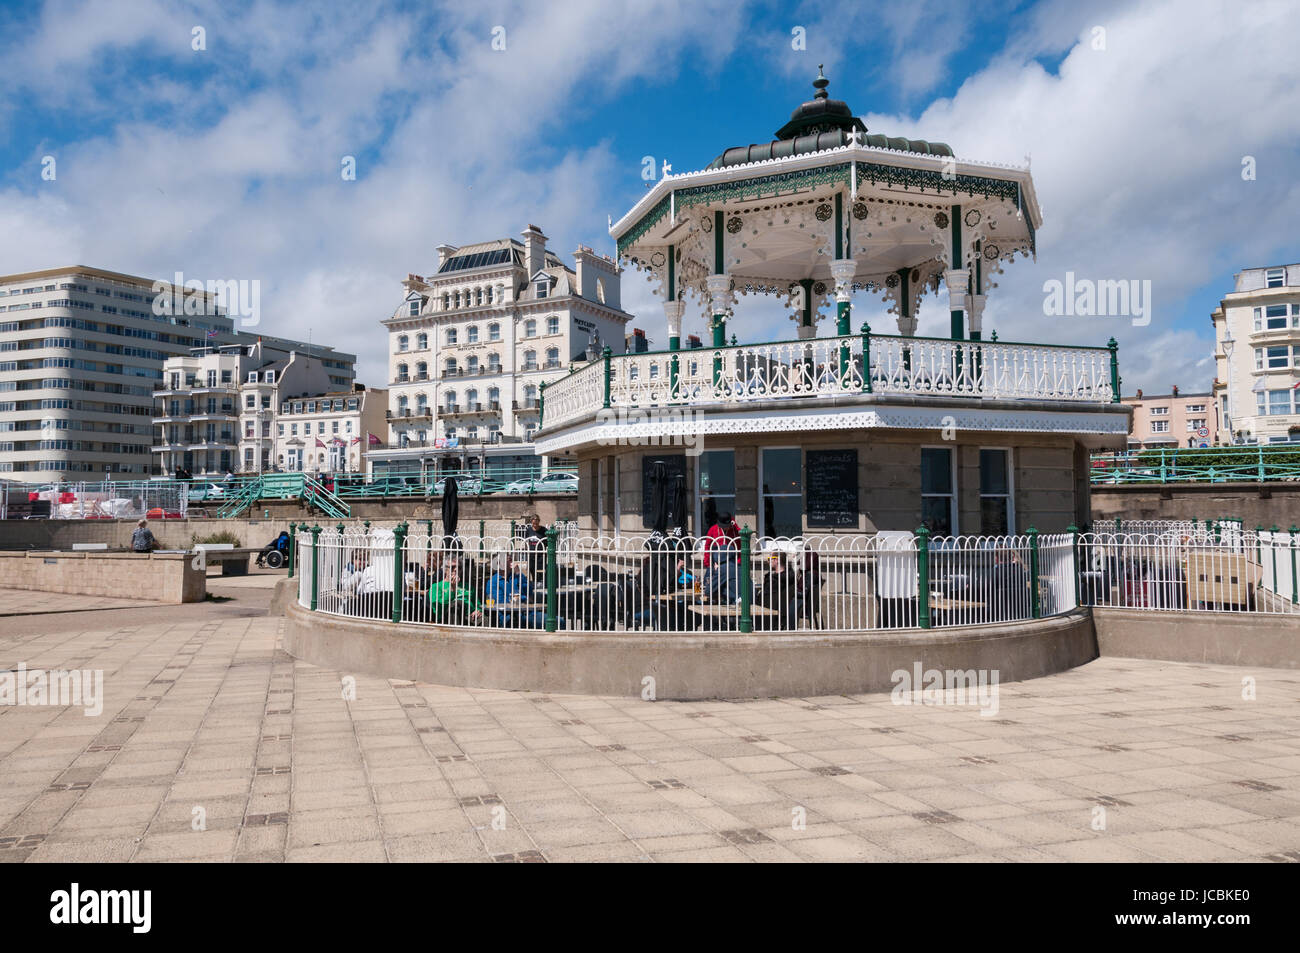 The Bandstand, Brighton seafront, United Kingdom - Stock Image